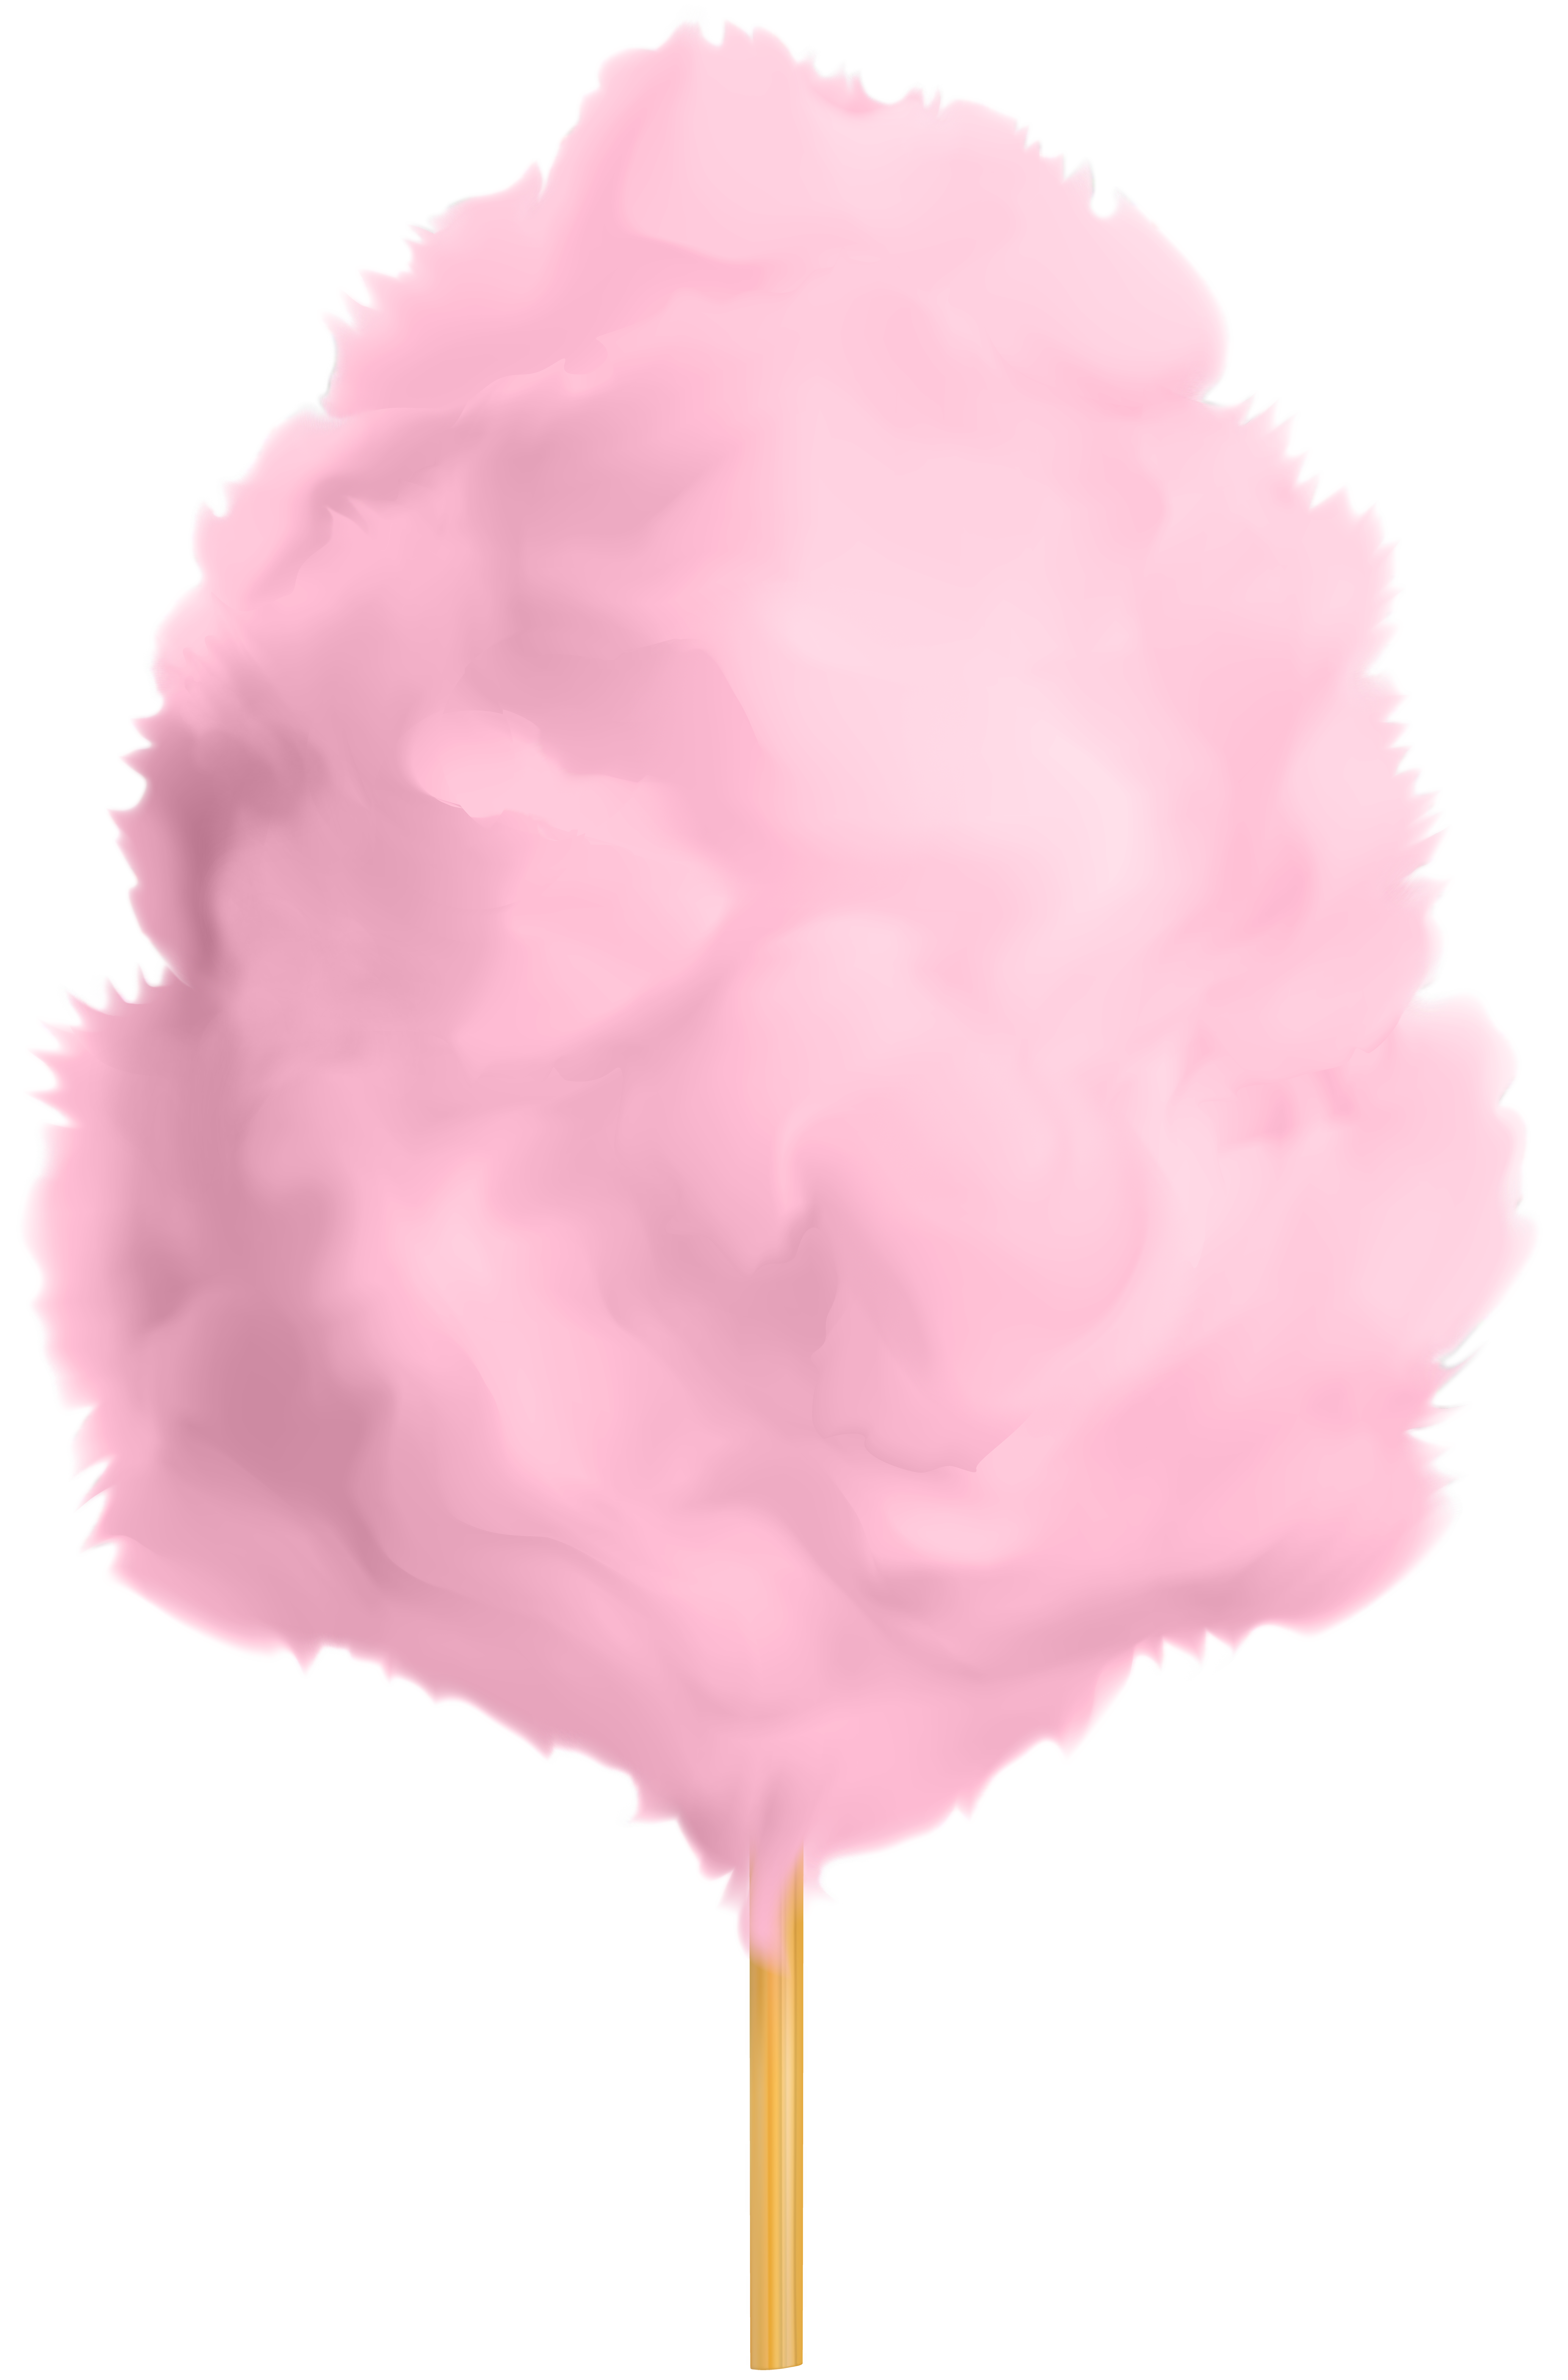 Cotton Candy Frame Png - Cotton Candy PNG Clip Art Image   Gallery Yopriceville - High ...